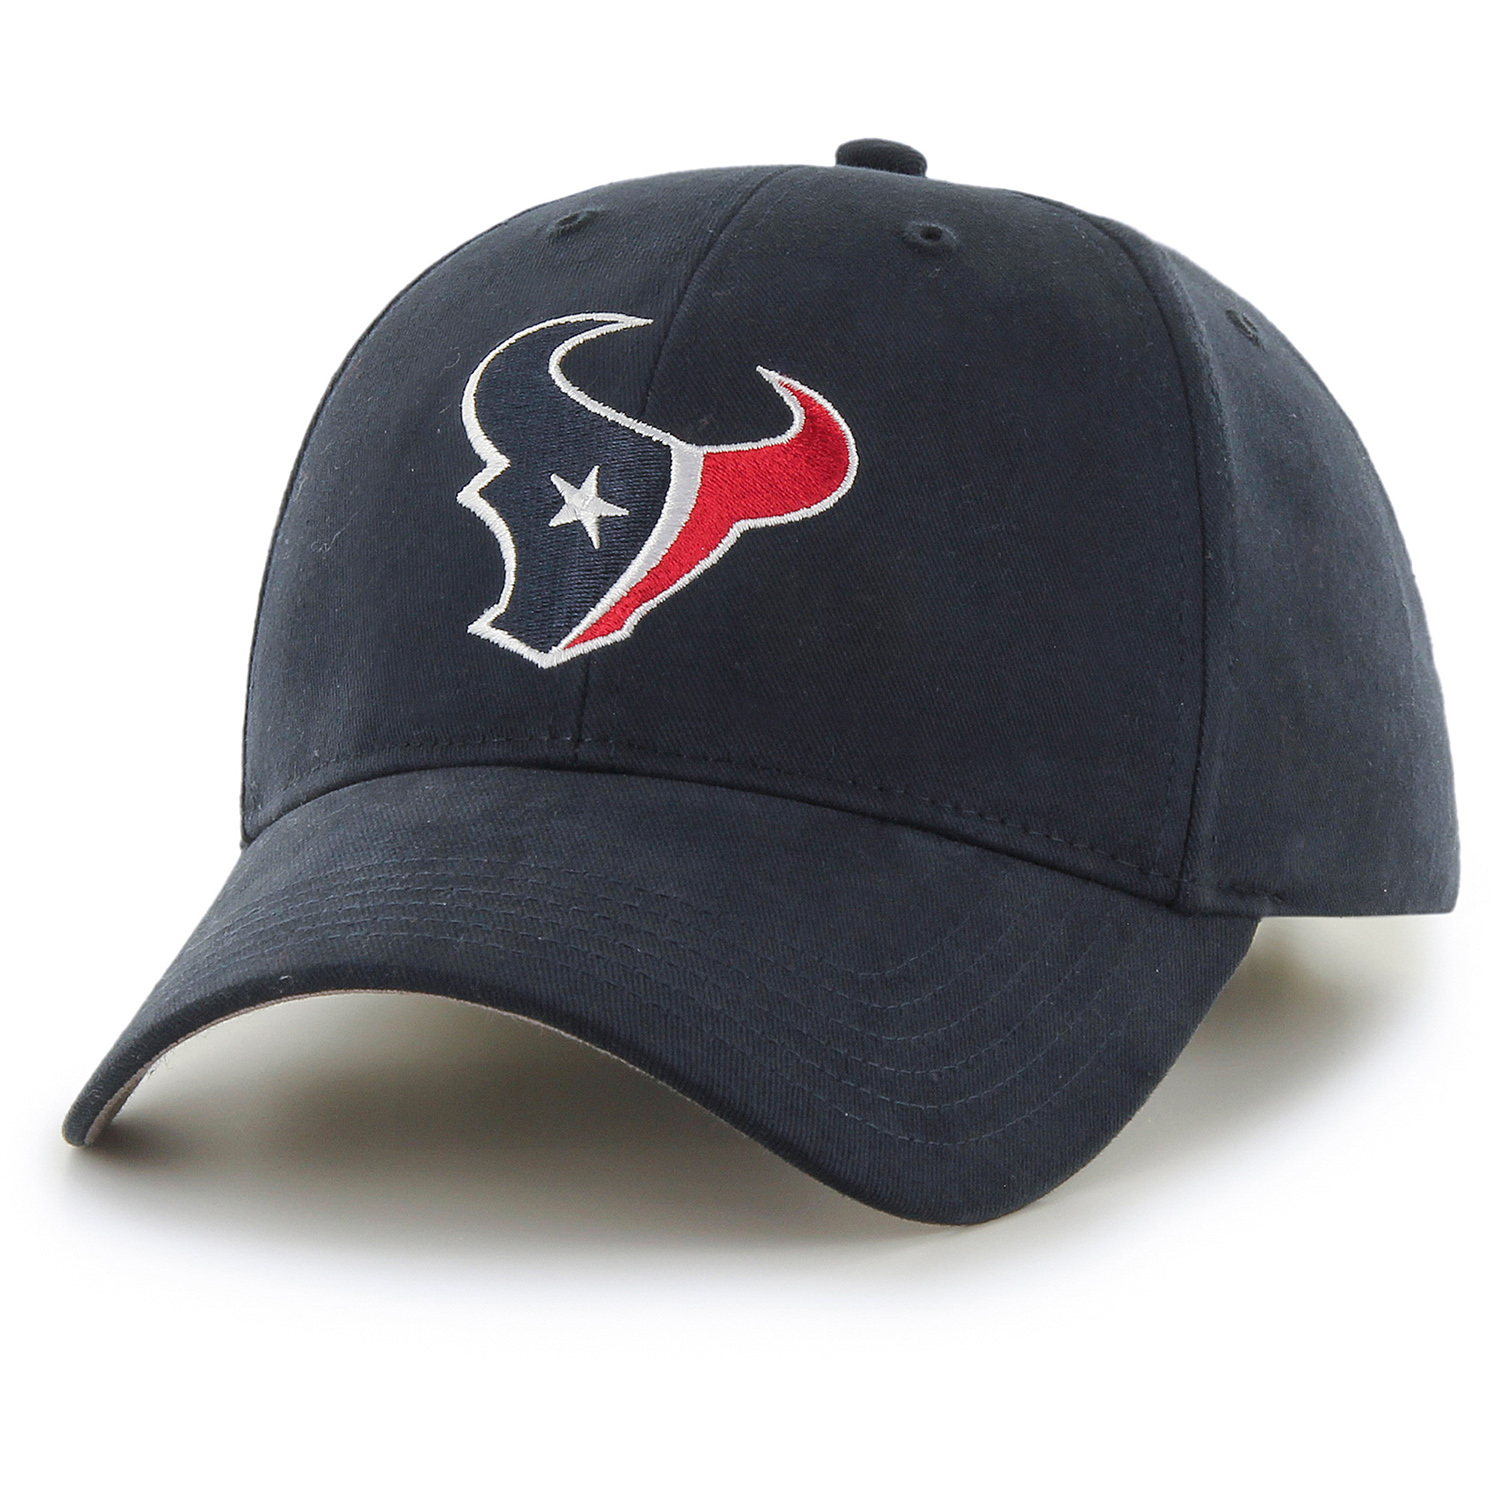 Men's Fan Favorite Navy Houston Texans Mass Basic Adjustable Hat - OSFA